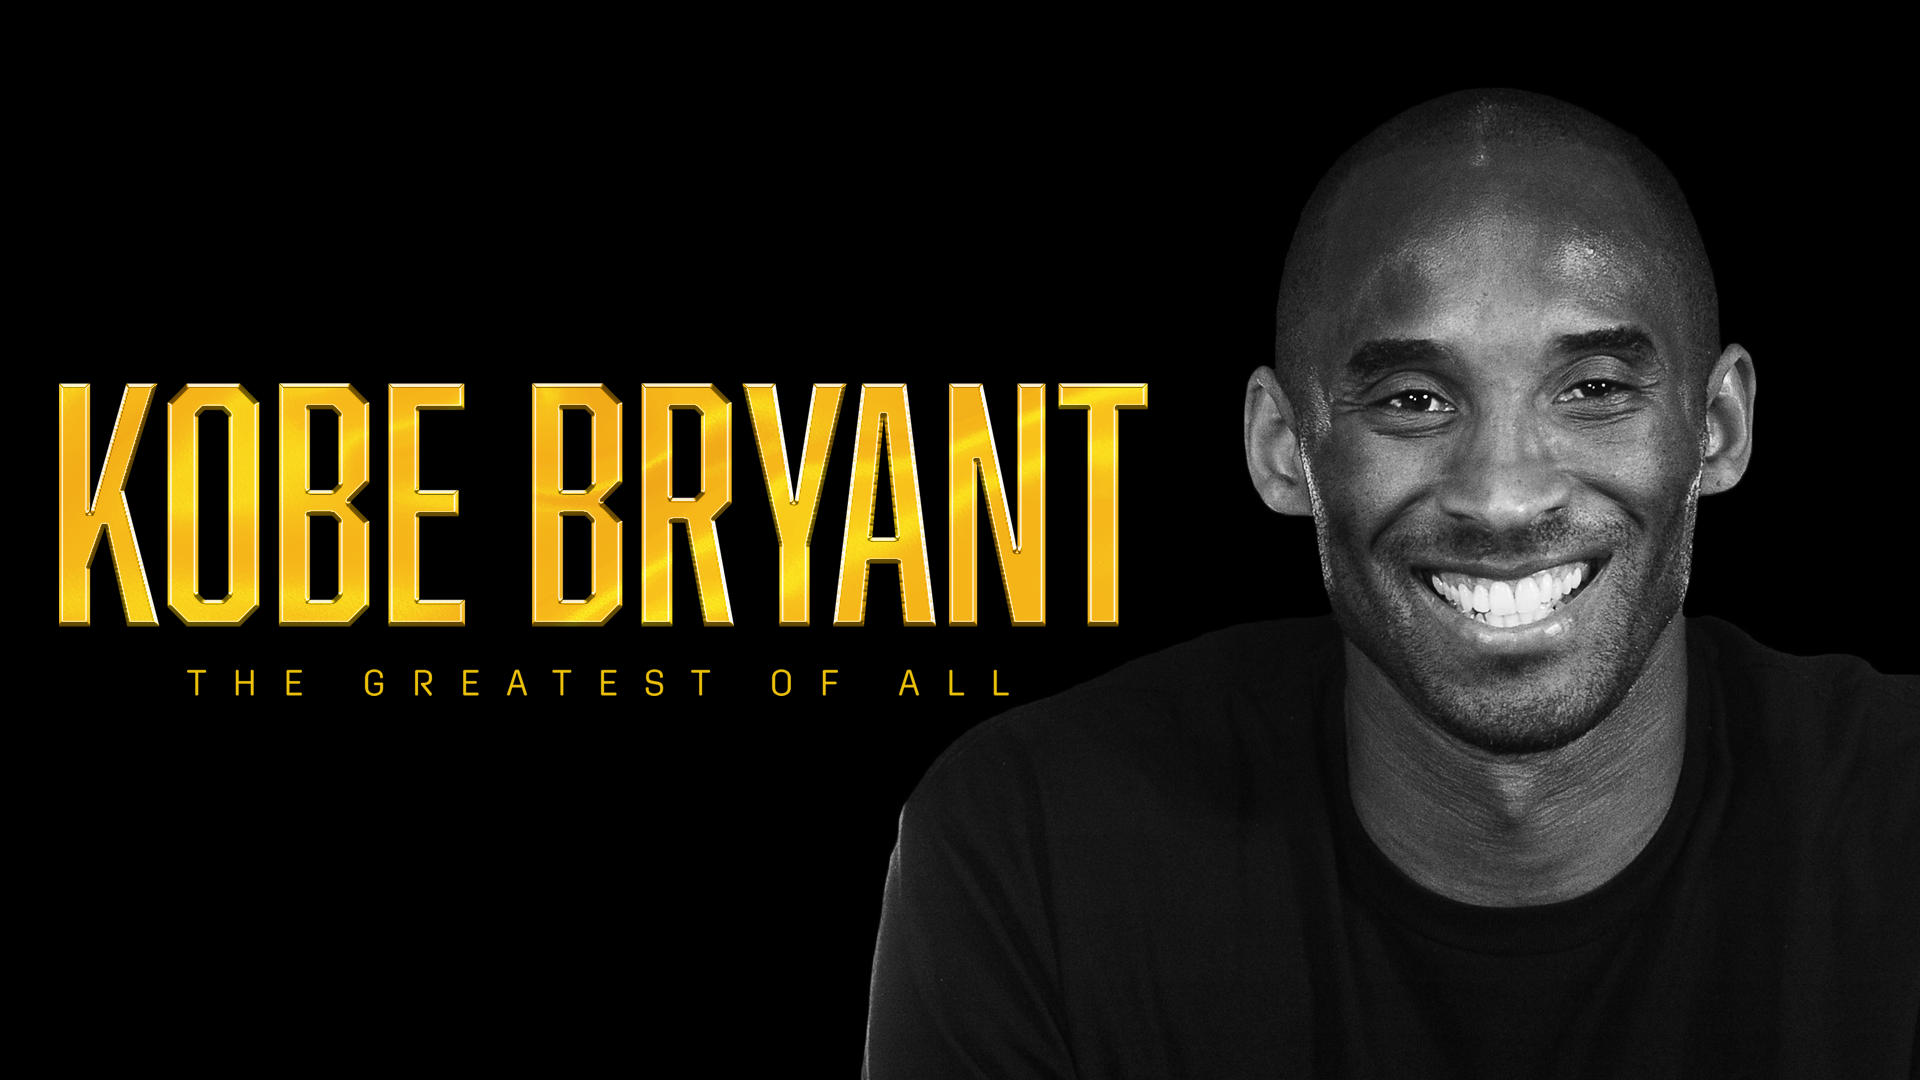 Kobe Bryant: The Greatest of All